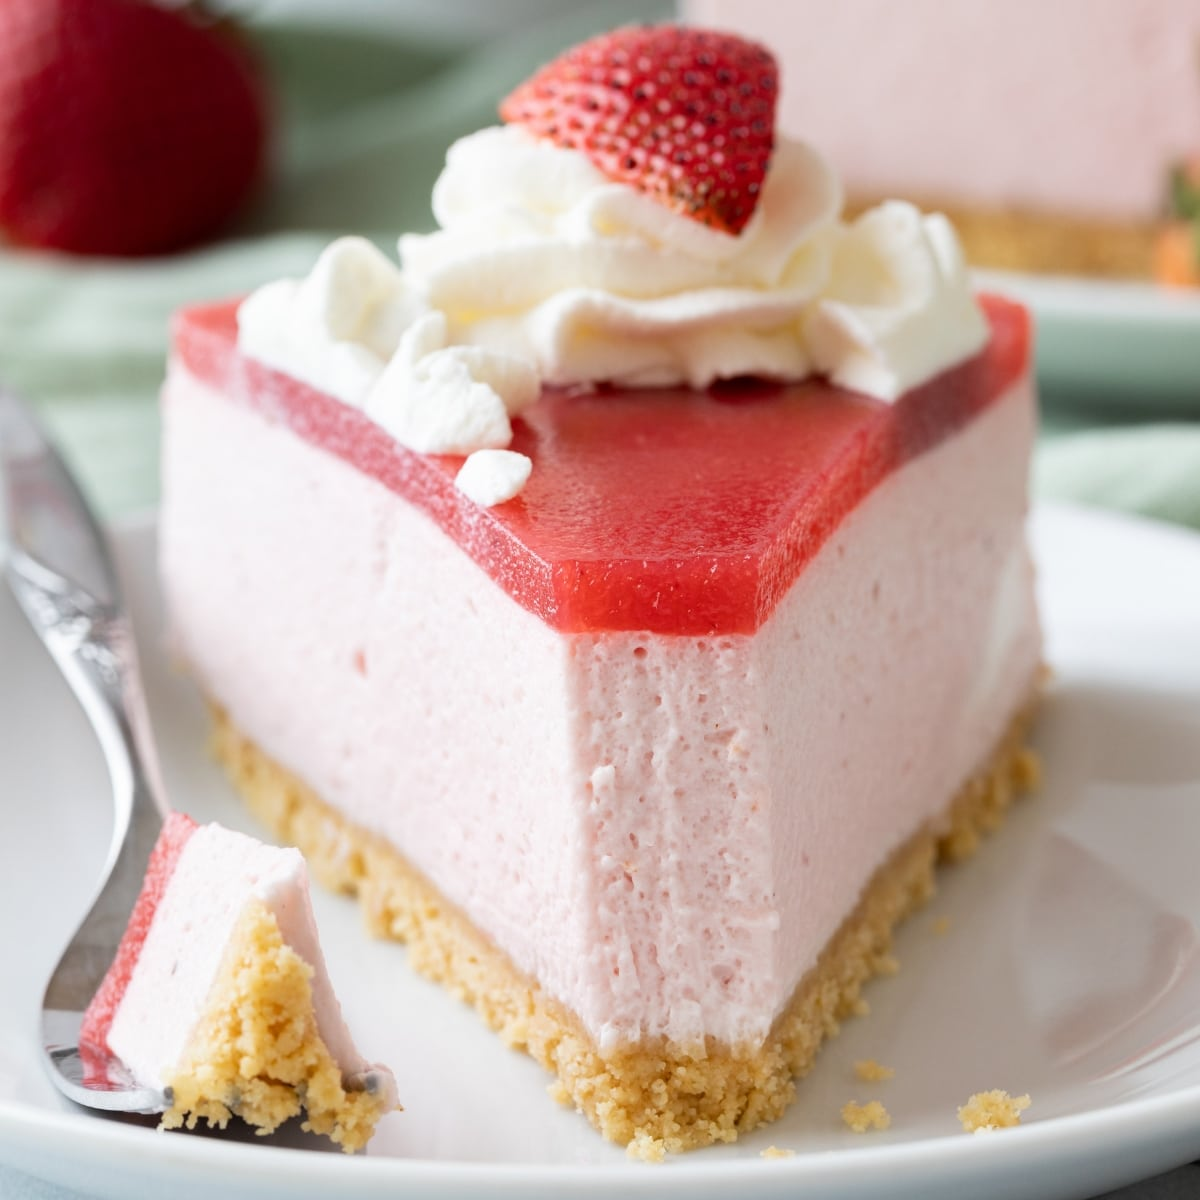 front of a slice of strawberry mousse cake with a fork taking a bite out